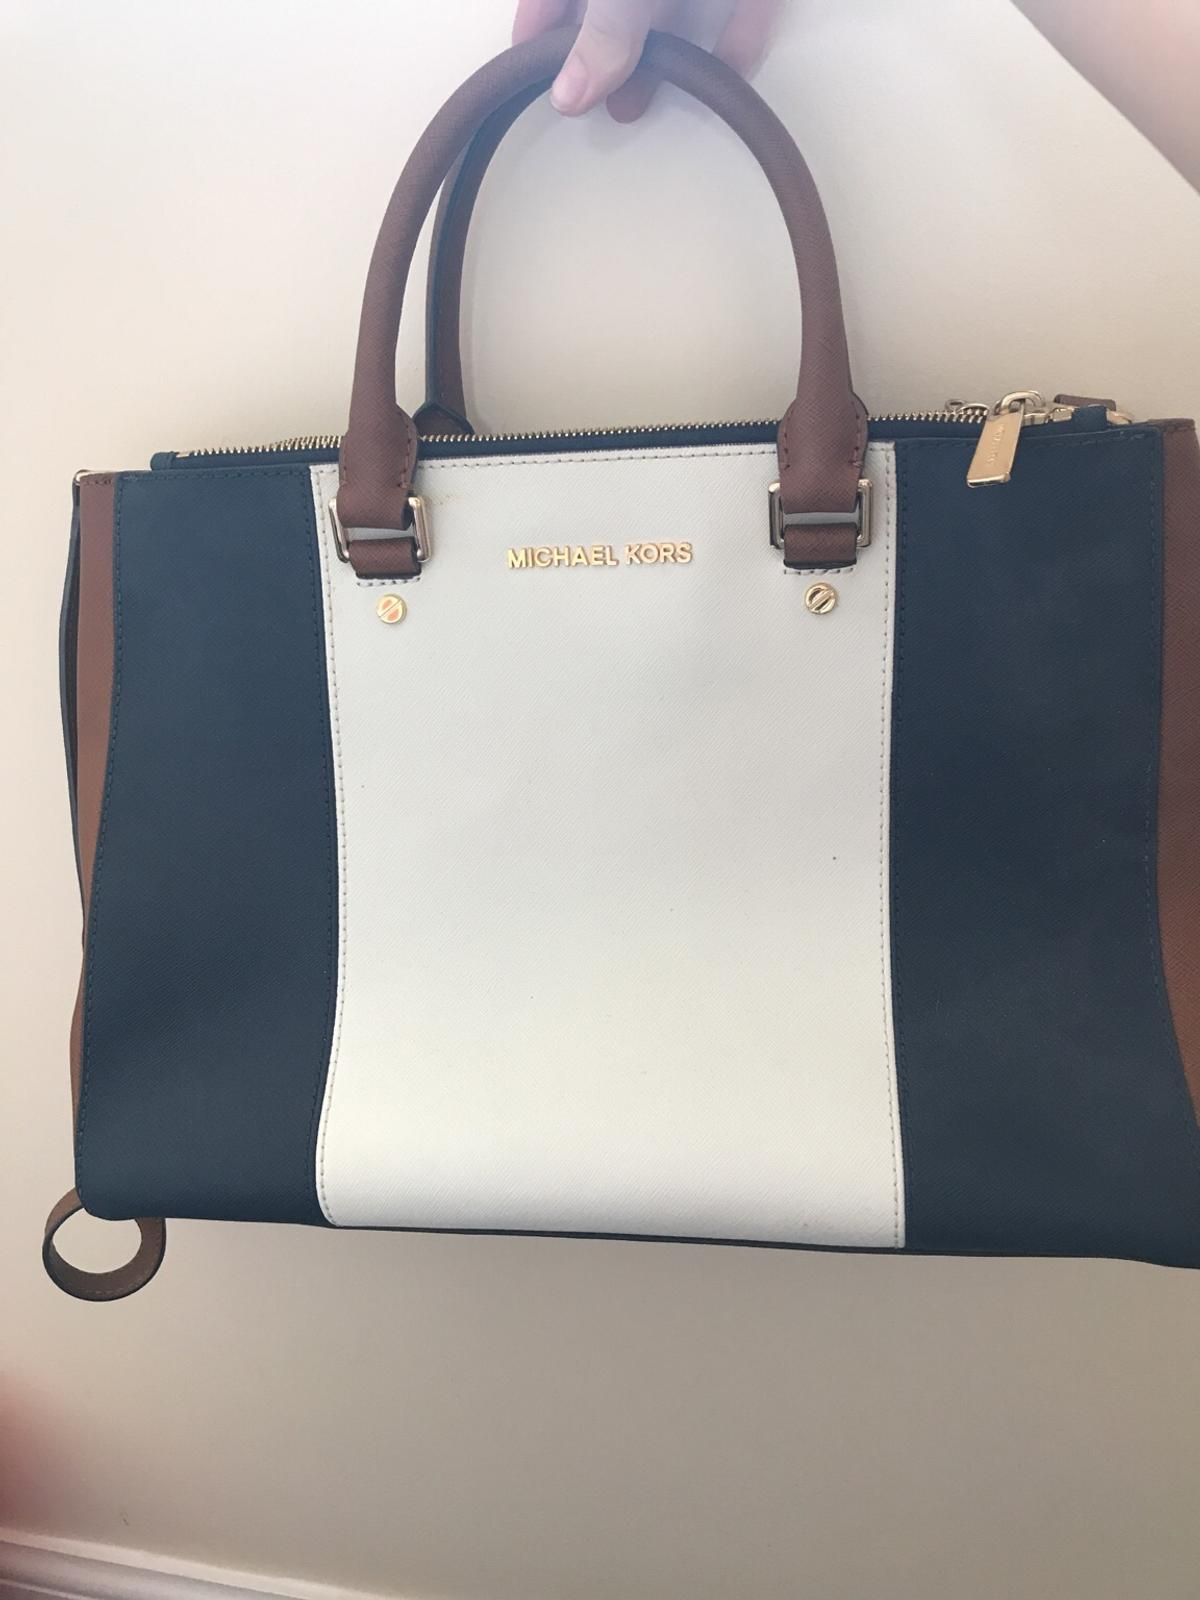 88aea132647e Michael kors tote bag in IP28 Heath for £30.00 for sale - Shpock